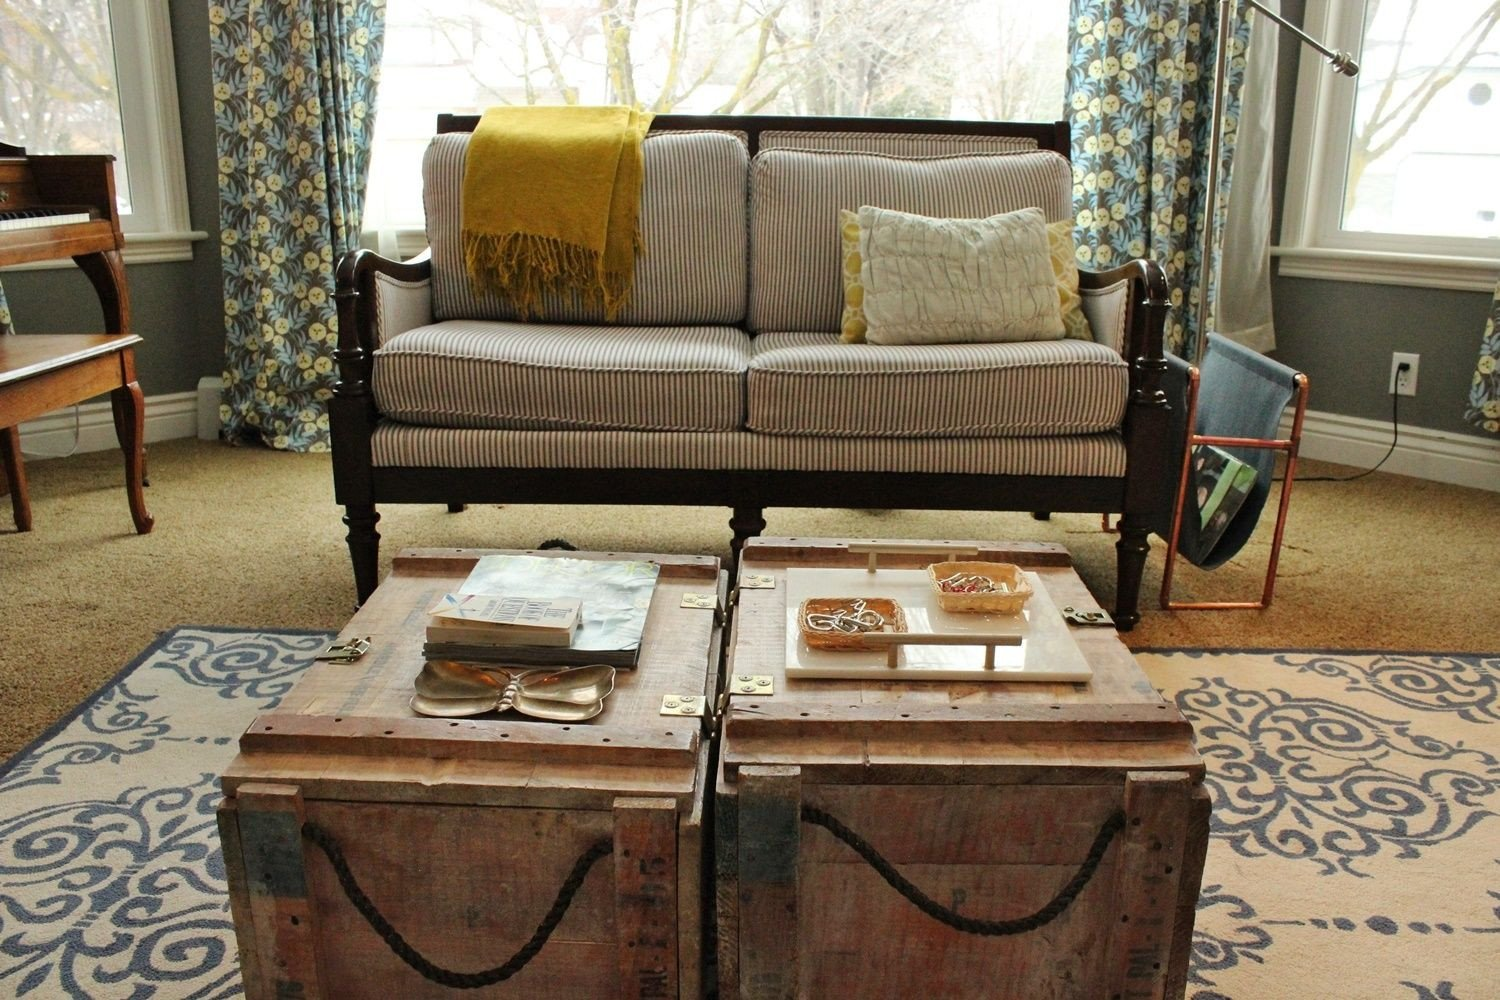 Kid Friendly Coffee Table Decor Awesome How to Style A Family Friendly Coffee Table